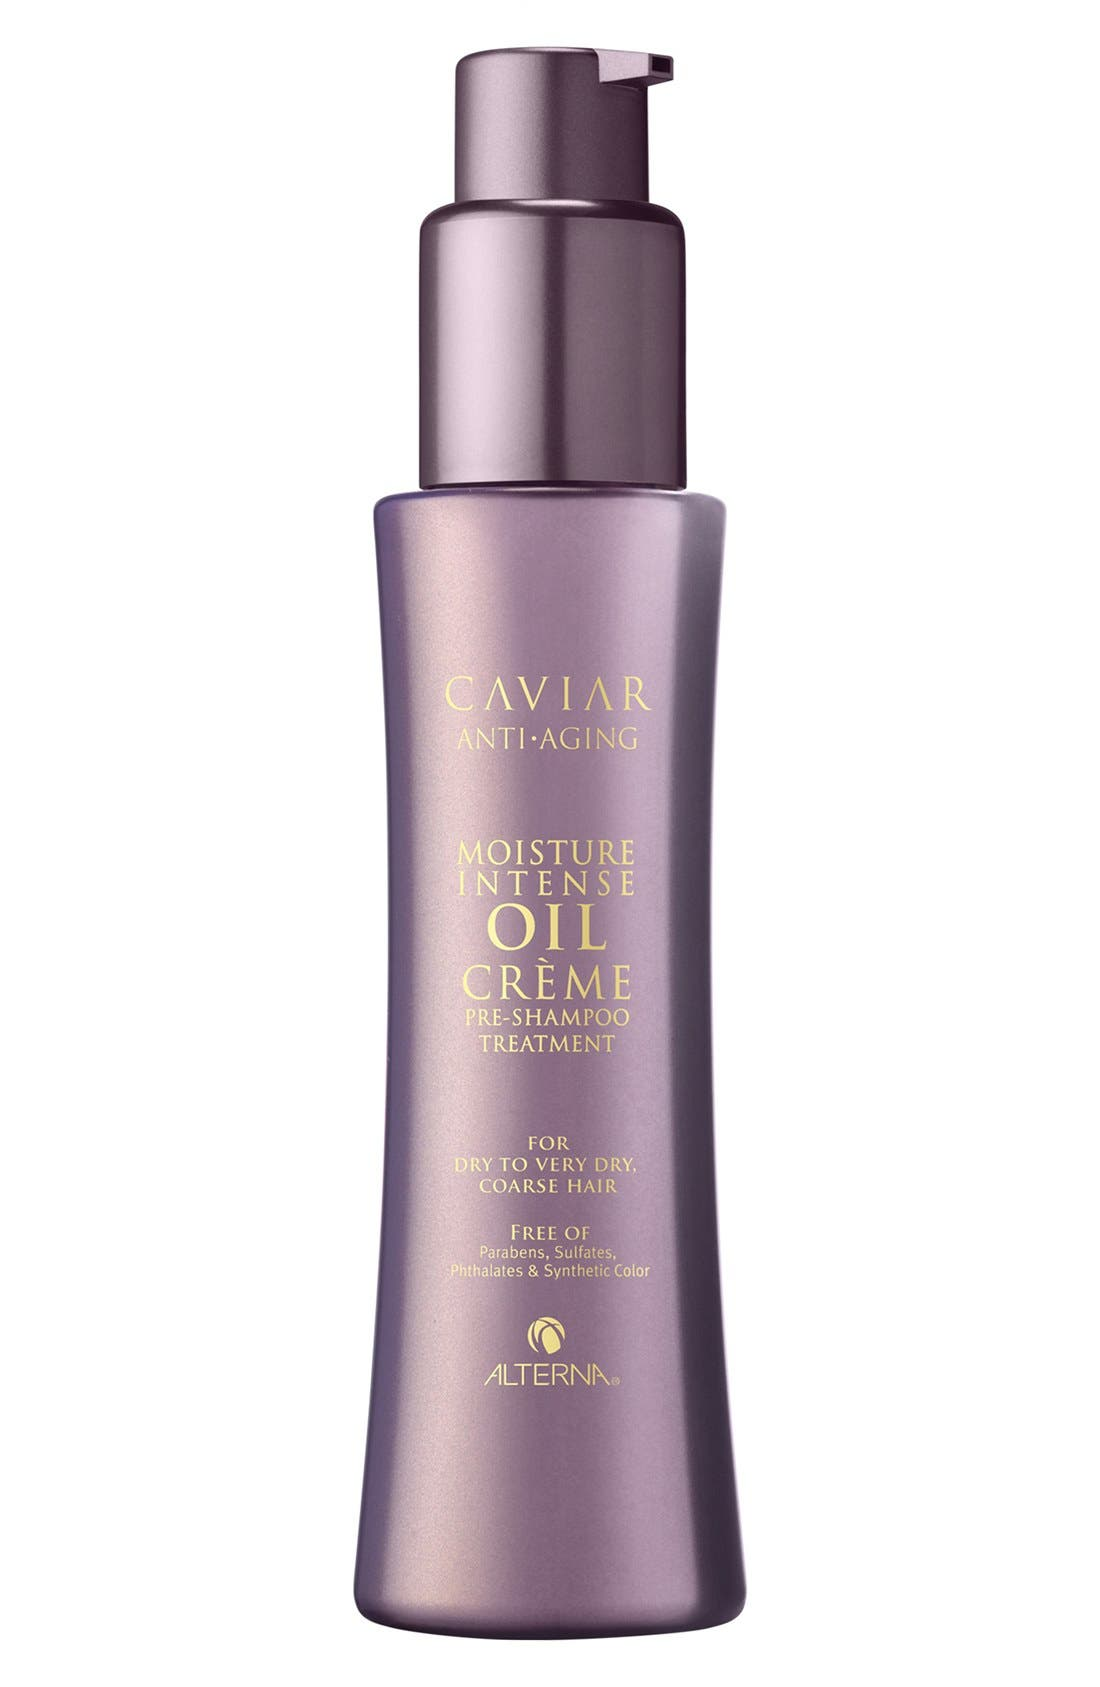 ALTERNA® Caviar Anti-Aging Moisture Intense Oil Crème Pre-Shampoo Treatment